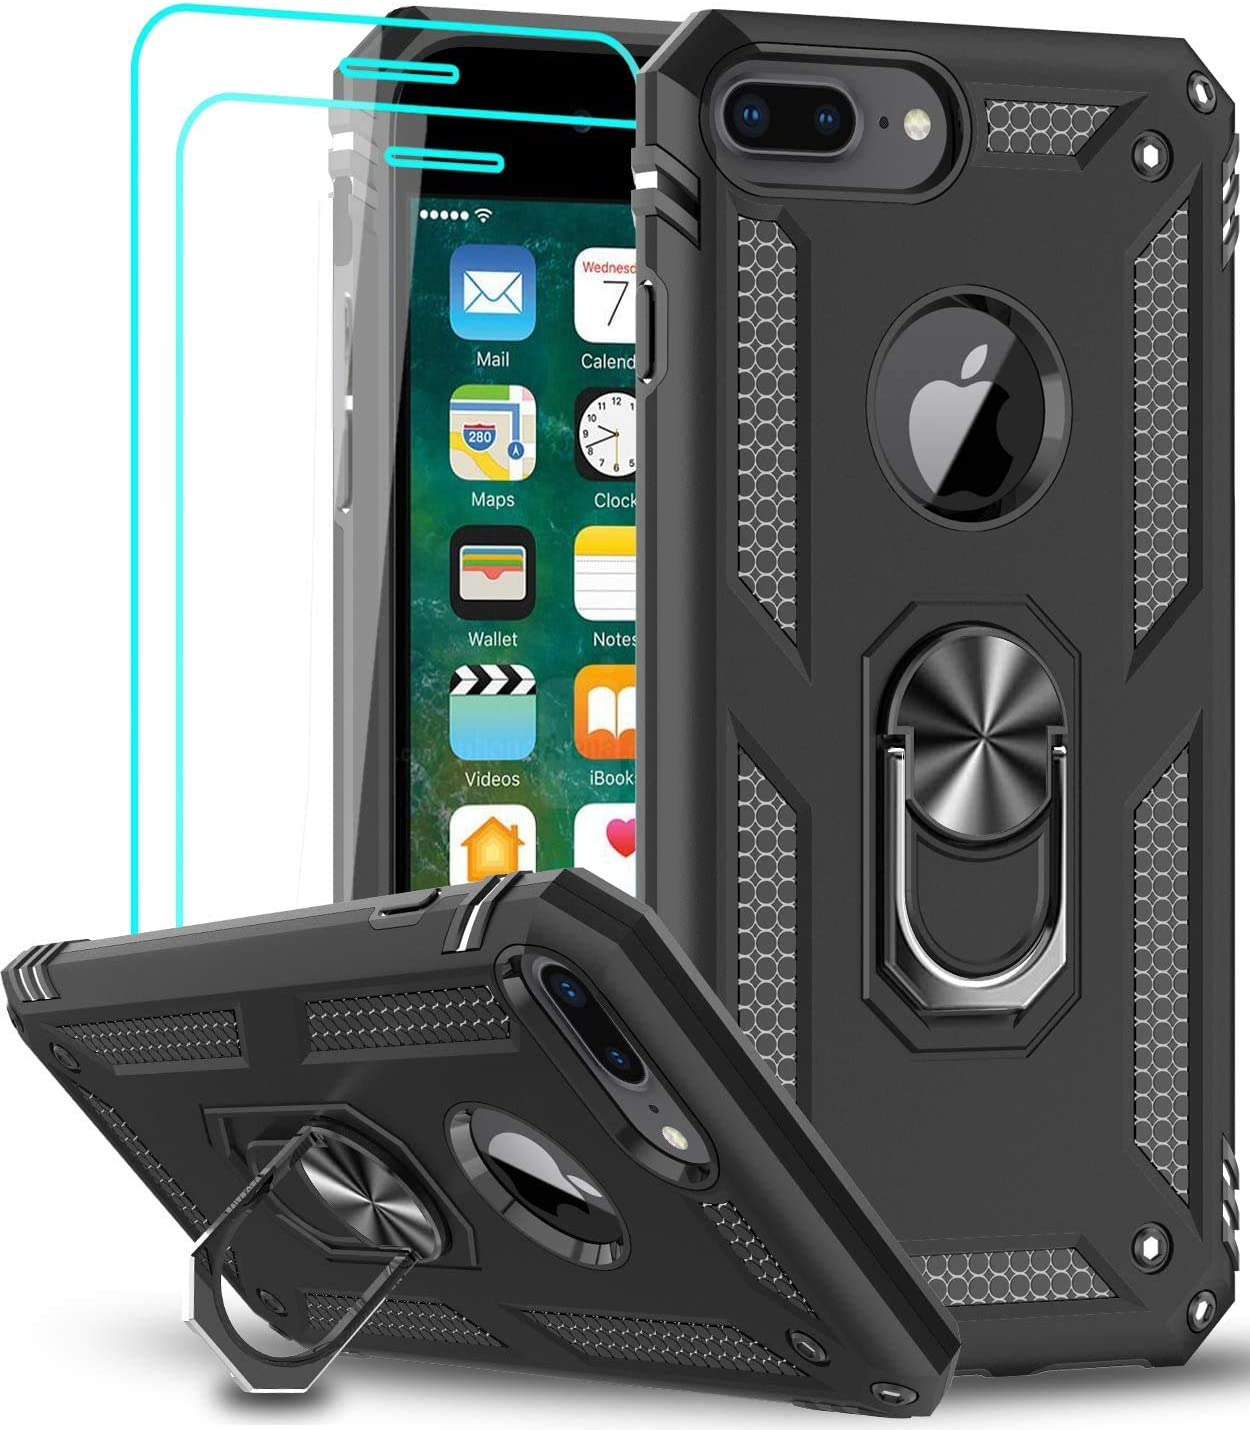 iPhone 8 Plus / 7 Plus / 6 Plus / 6s Plus Case with Tempered Glass Screen Protector [2Pack], LeYi Military Grade Phone Case with Car Mount Ring Kickstand for iPhone 8/7/6/6s Plus, Black